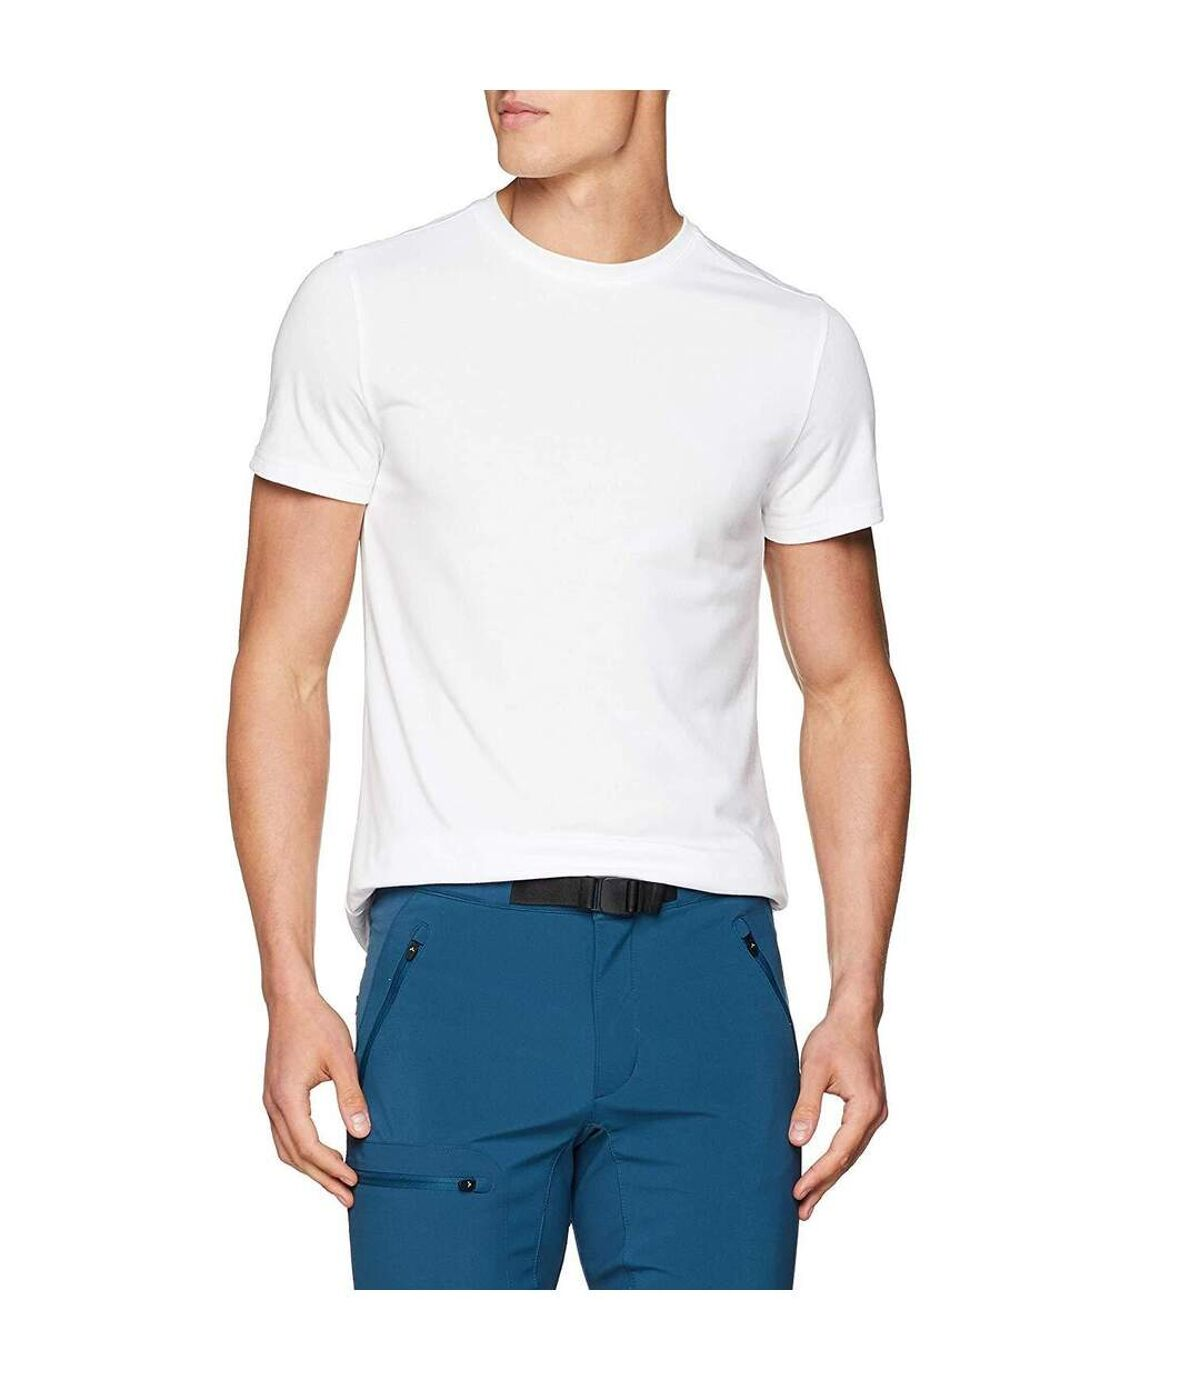 Craghoppers Mens First Layer Short Sleeve T-shirt (Optic White) - UTCG985